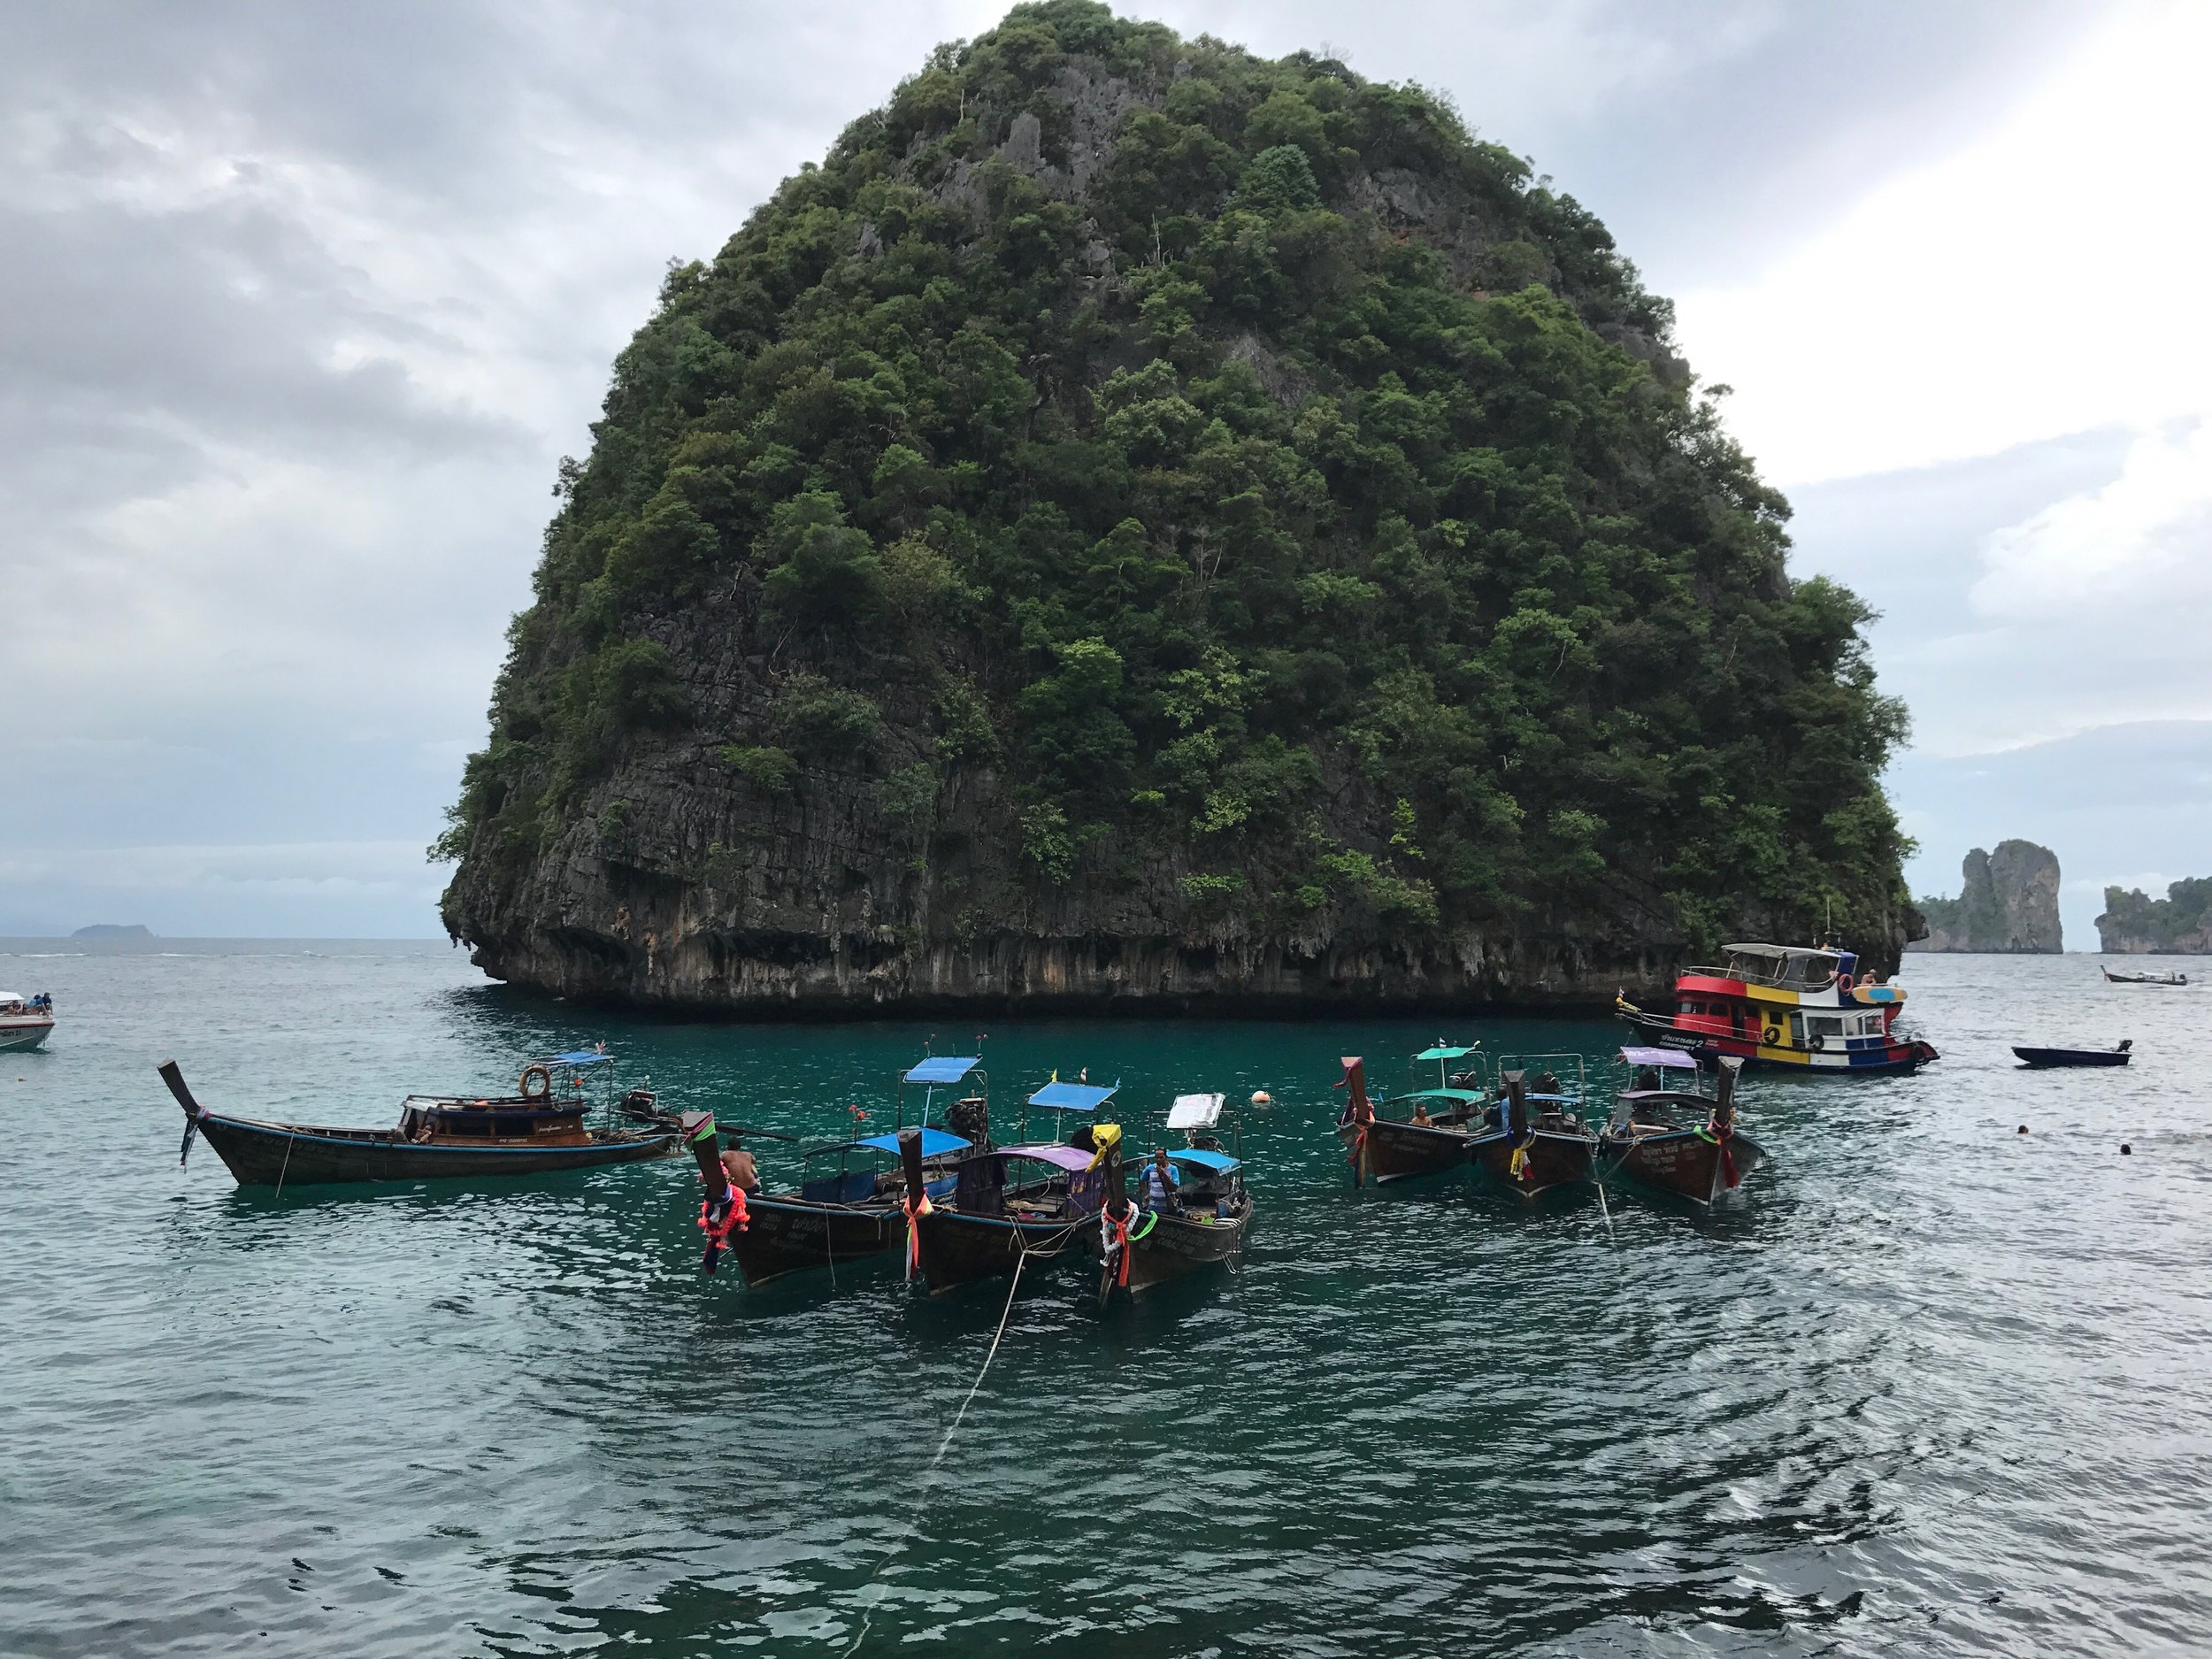 The Phi Phi Islands... - The Phi Phi Islands are located in Thailand, between the large island of Phuket and the western Andaman Sea coast of the mainland.